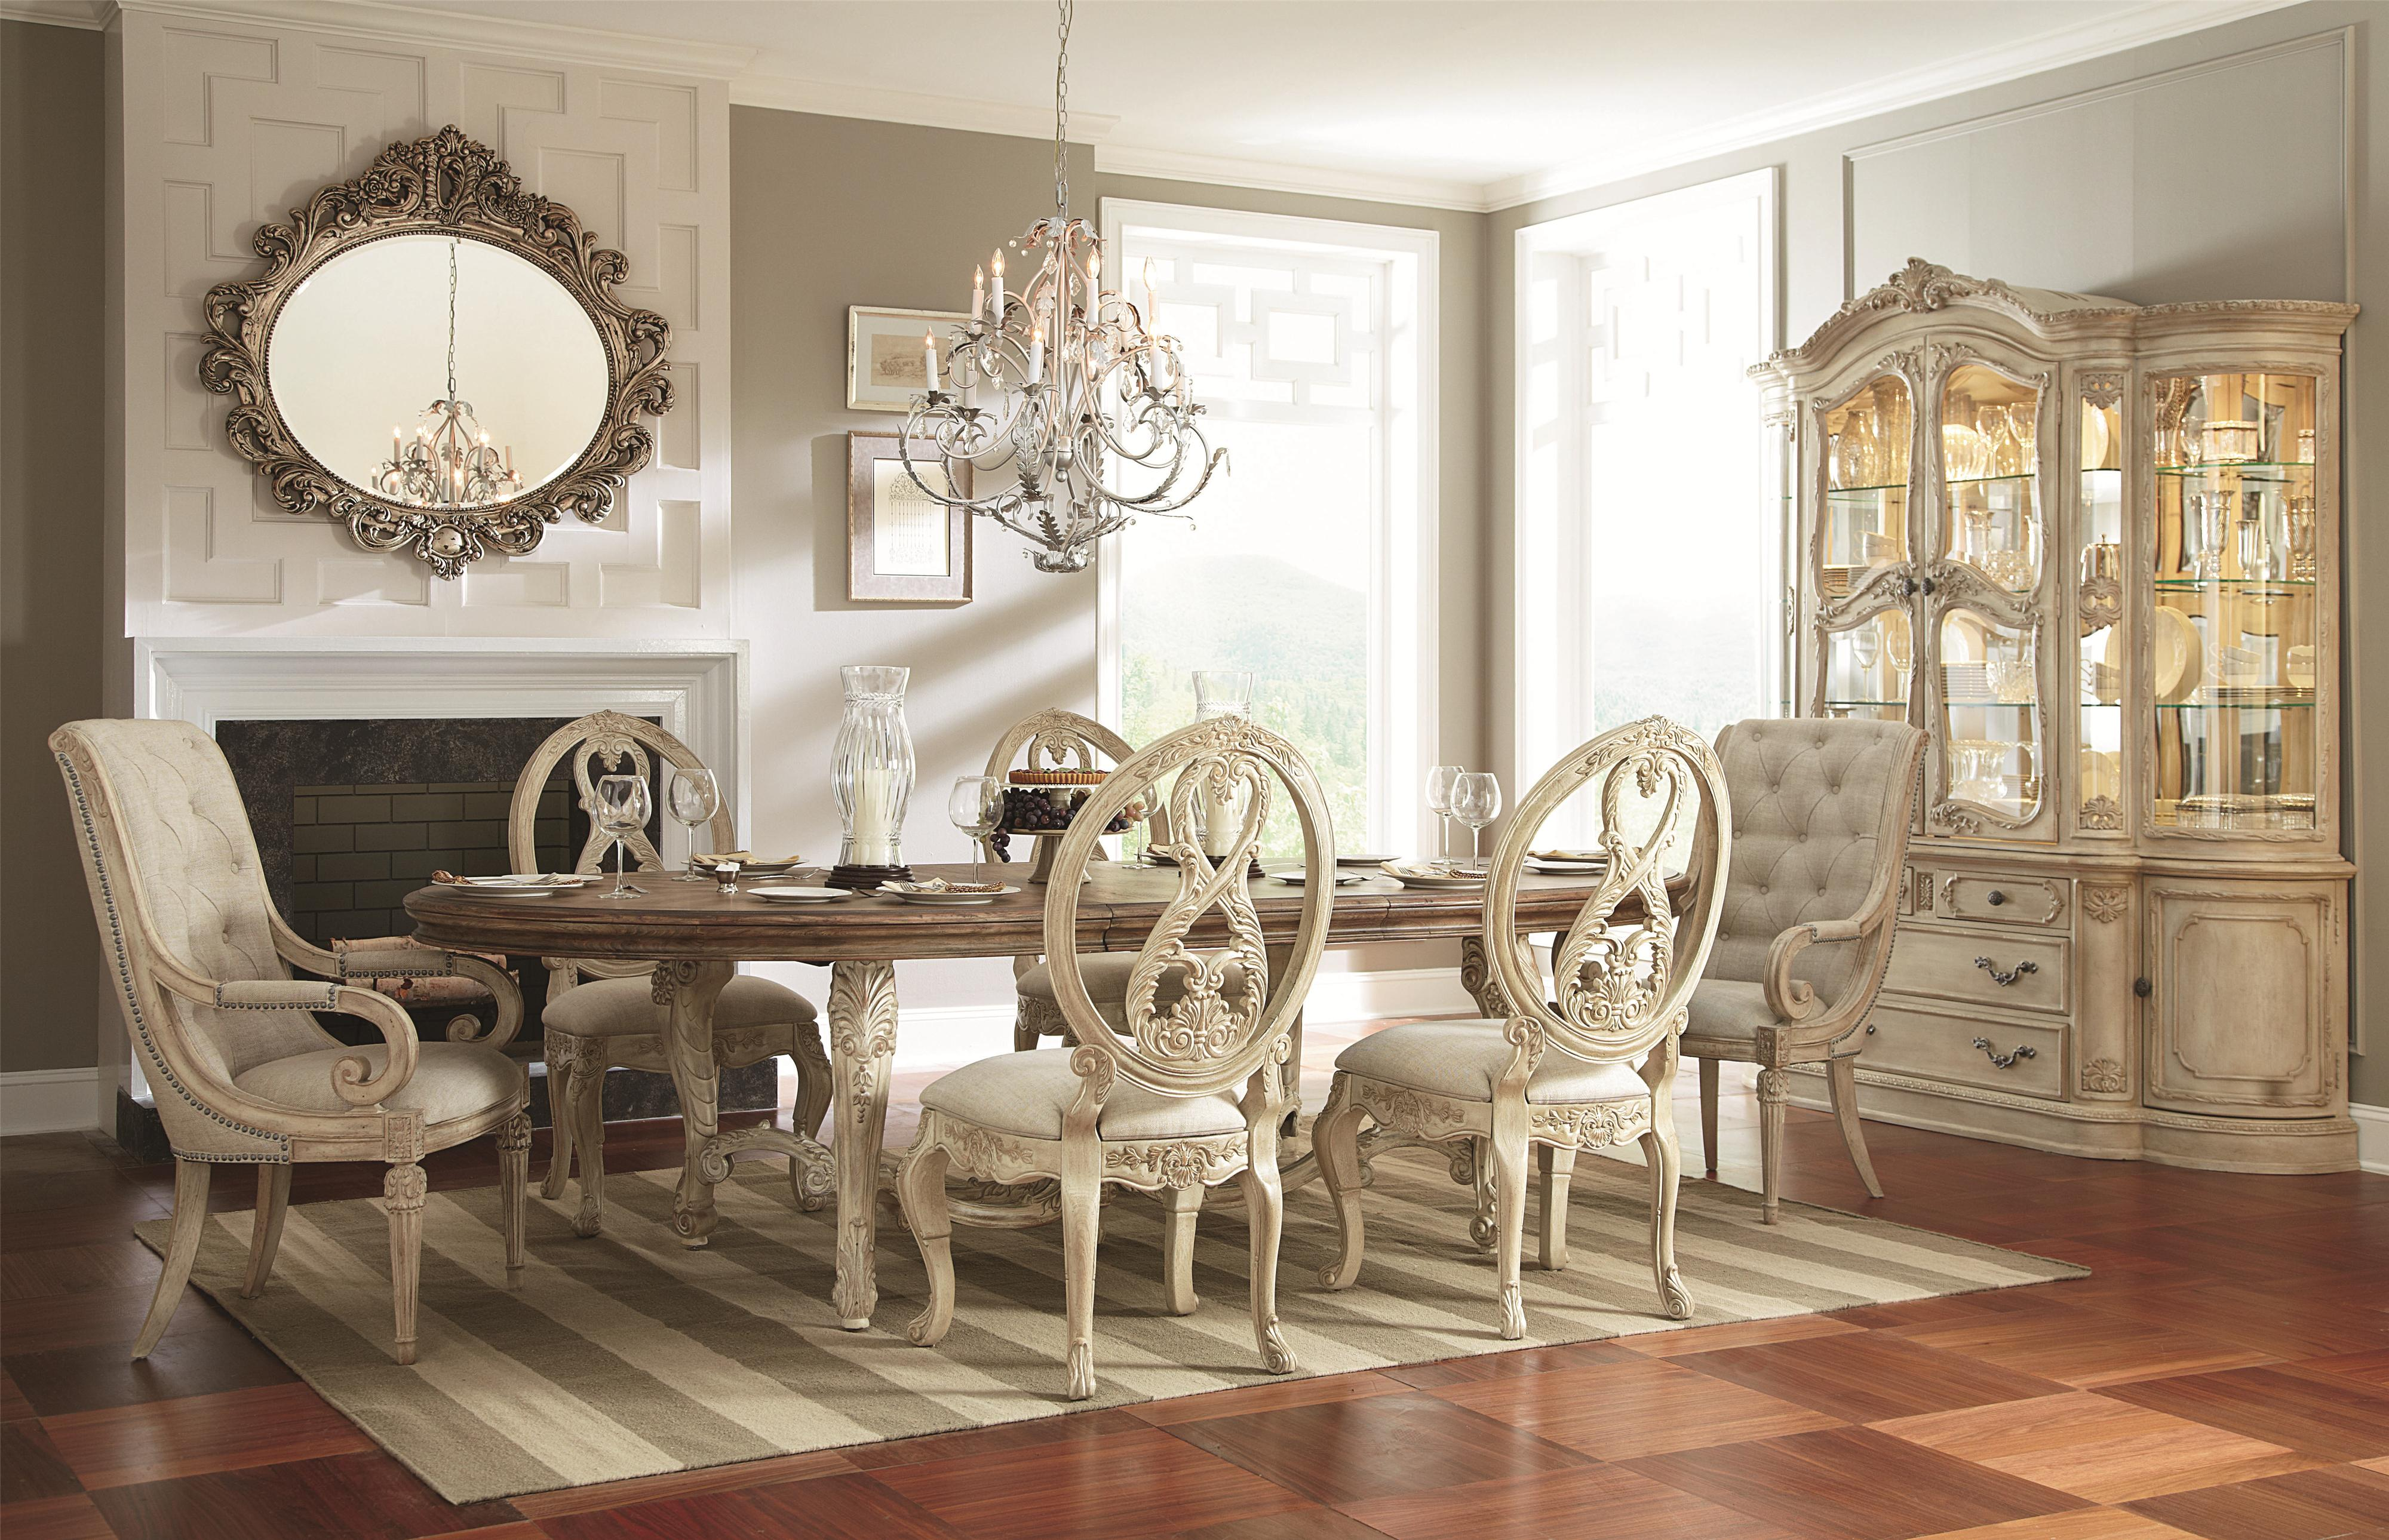 oval kitchen table American Drew Jessica McClintock Home The Boutique Collection 7 Piece Oval Dining Table with Splat Back Upholstered Arm Chairs Wayside Furniture